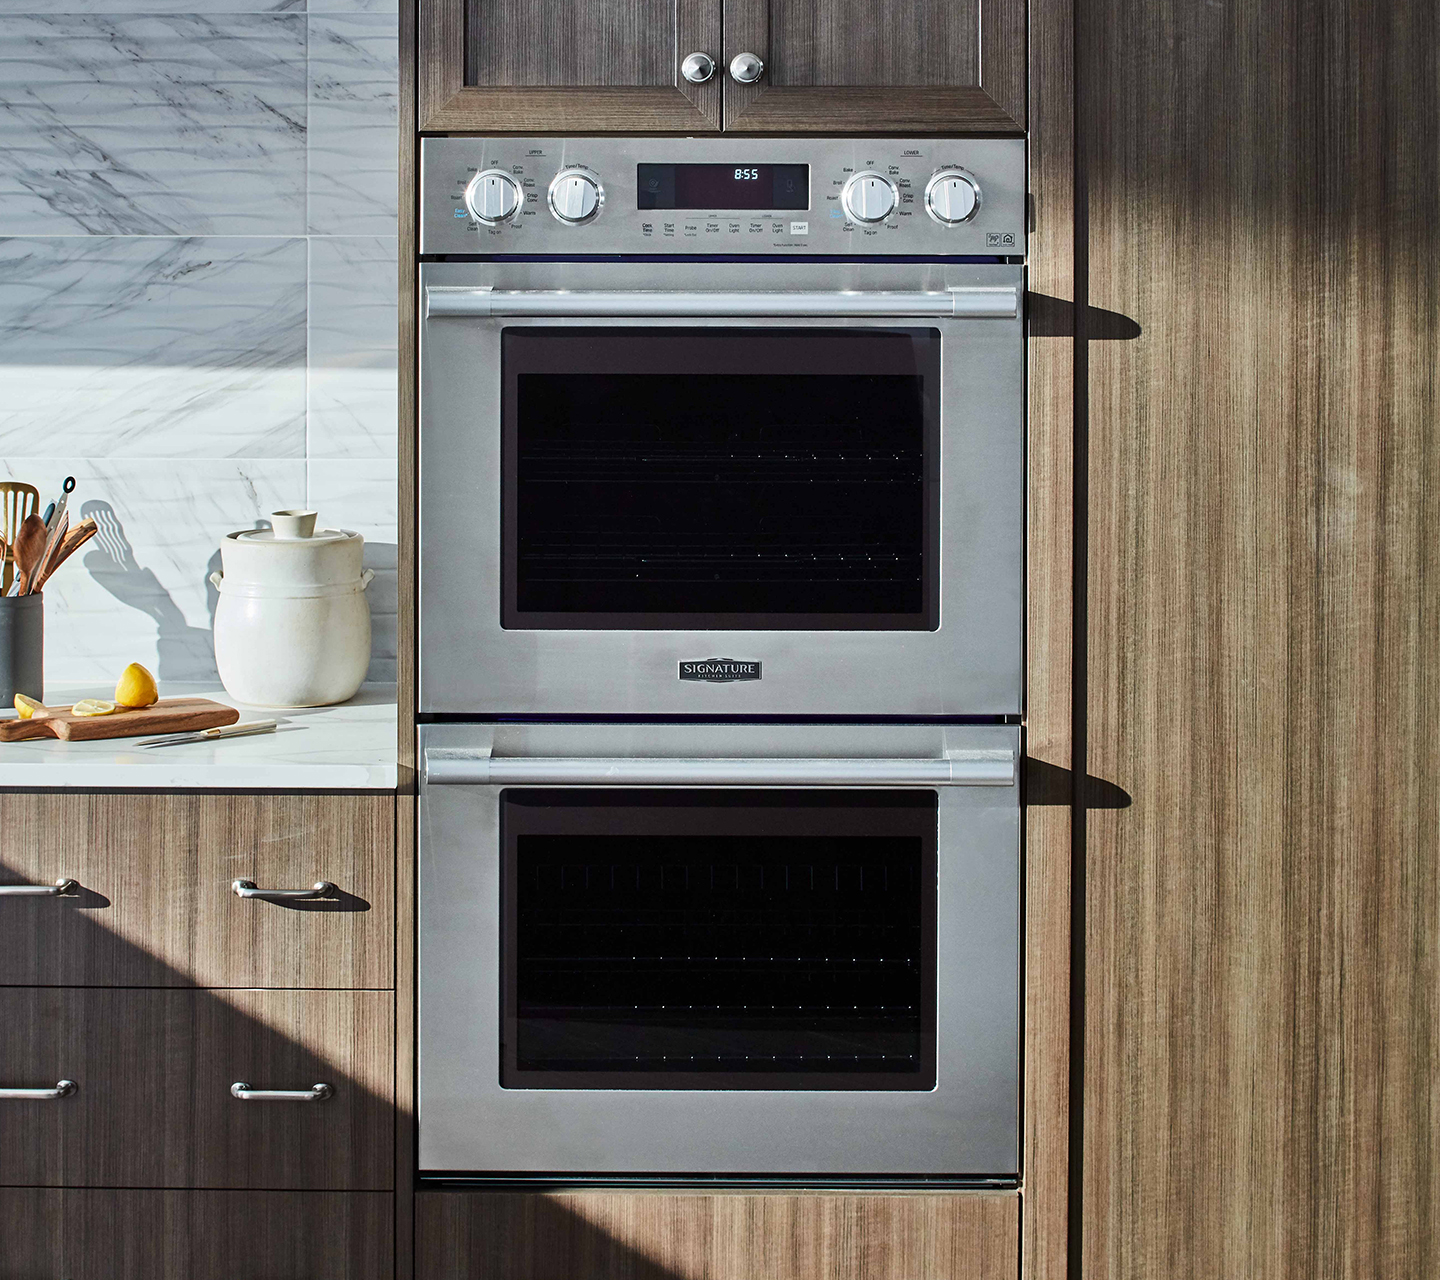 Signature Kitchen Suite 30-inch Double Wall Oven